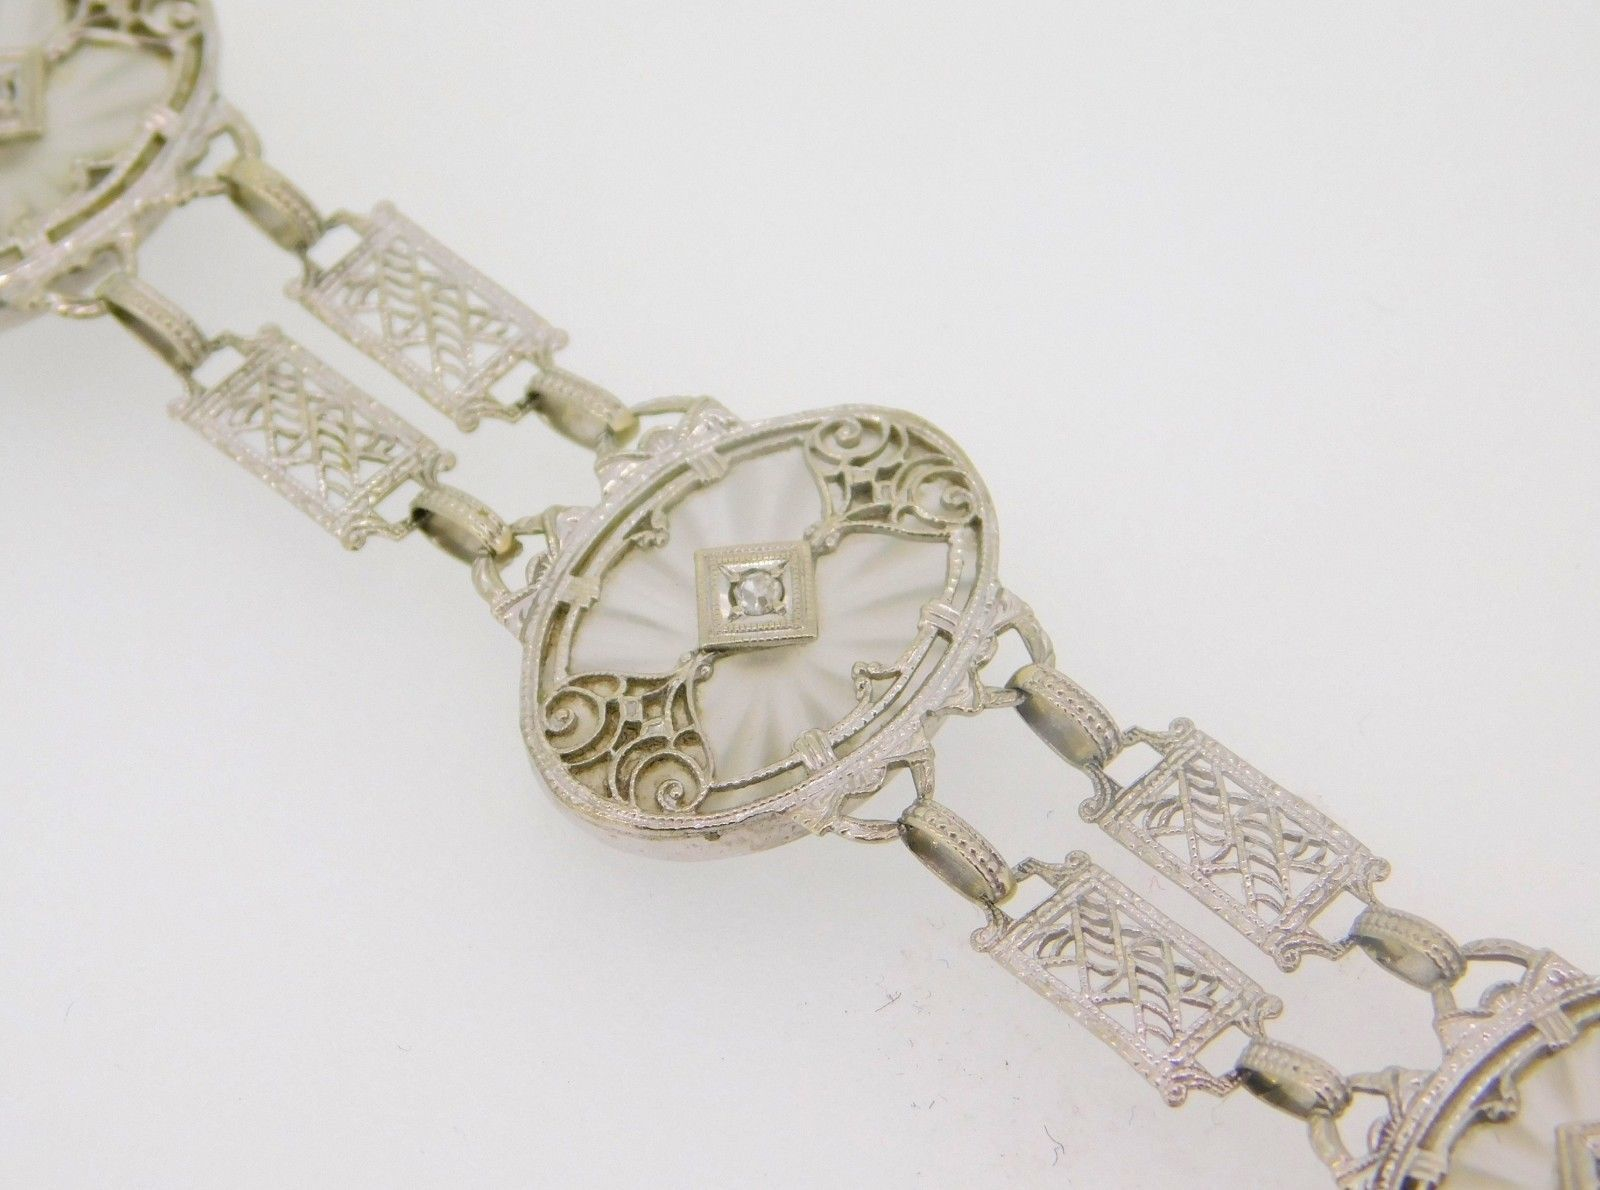 10k Gold Filigree / Art Deco Genuine Rock Crystal Bracelet w/ Diamonds (#J4024)